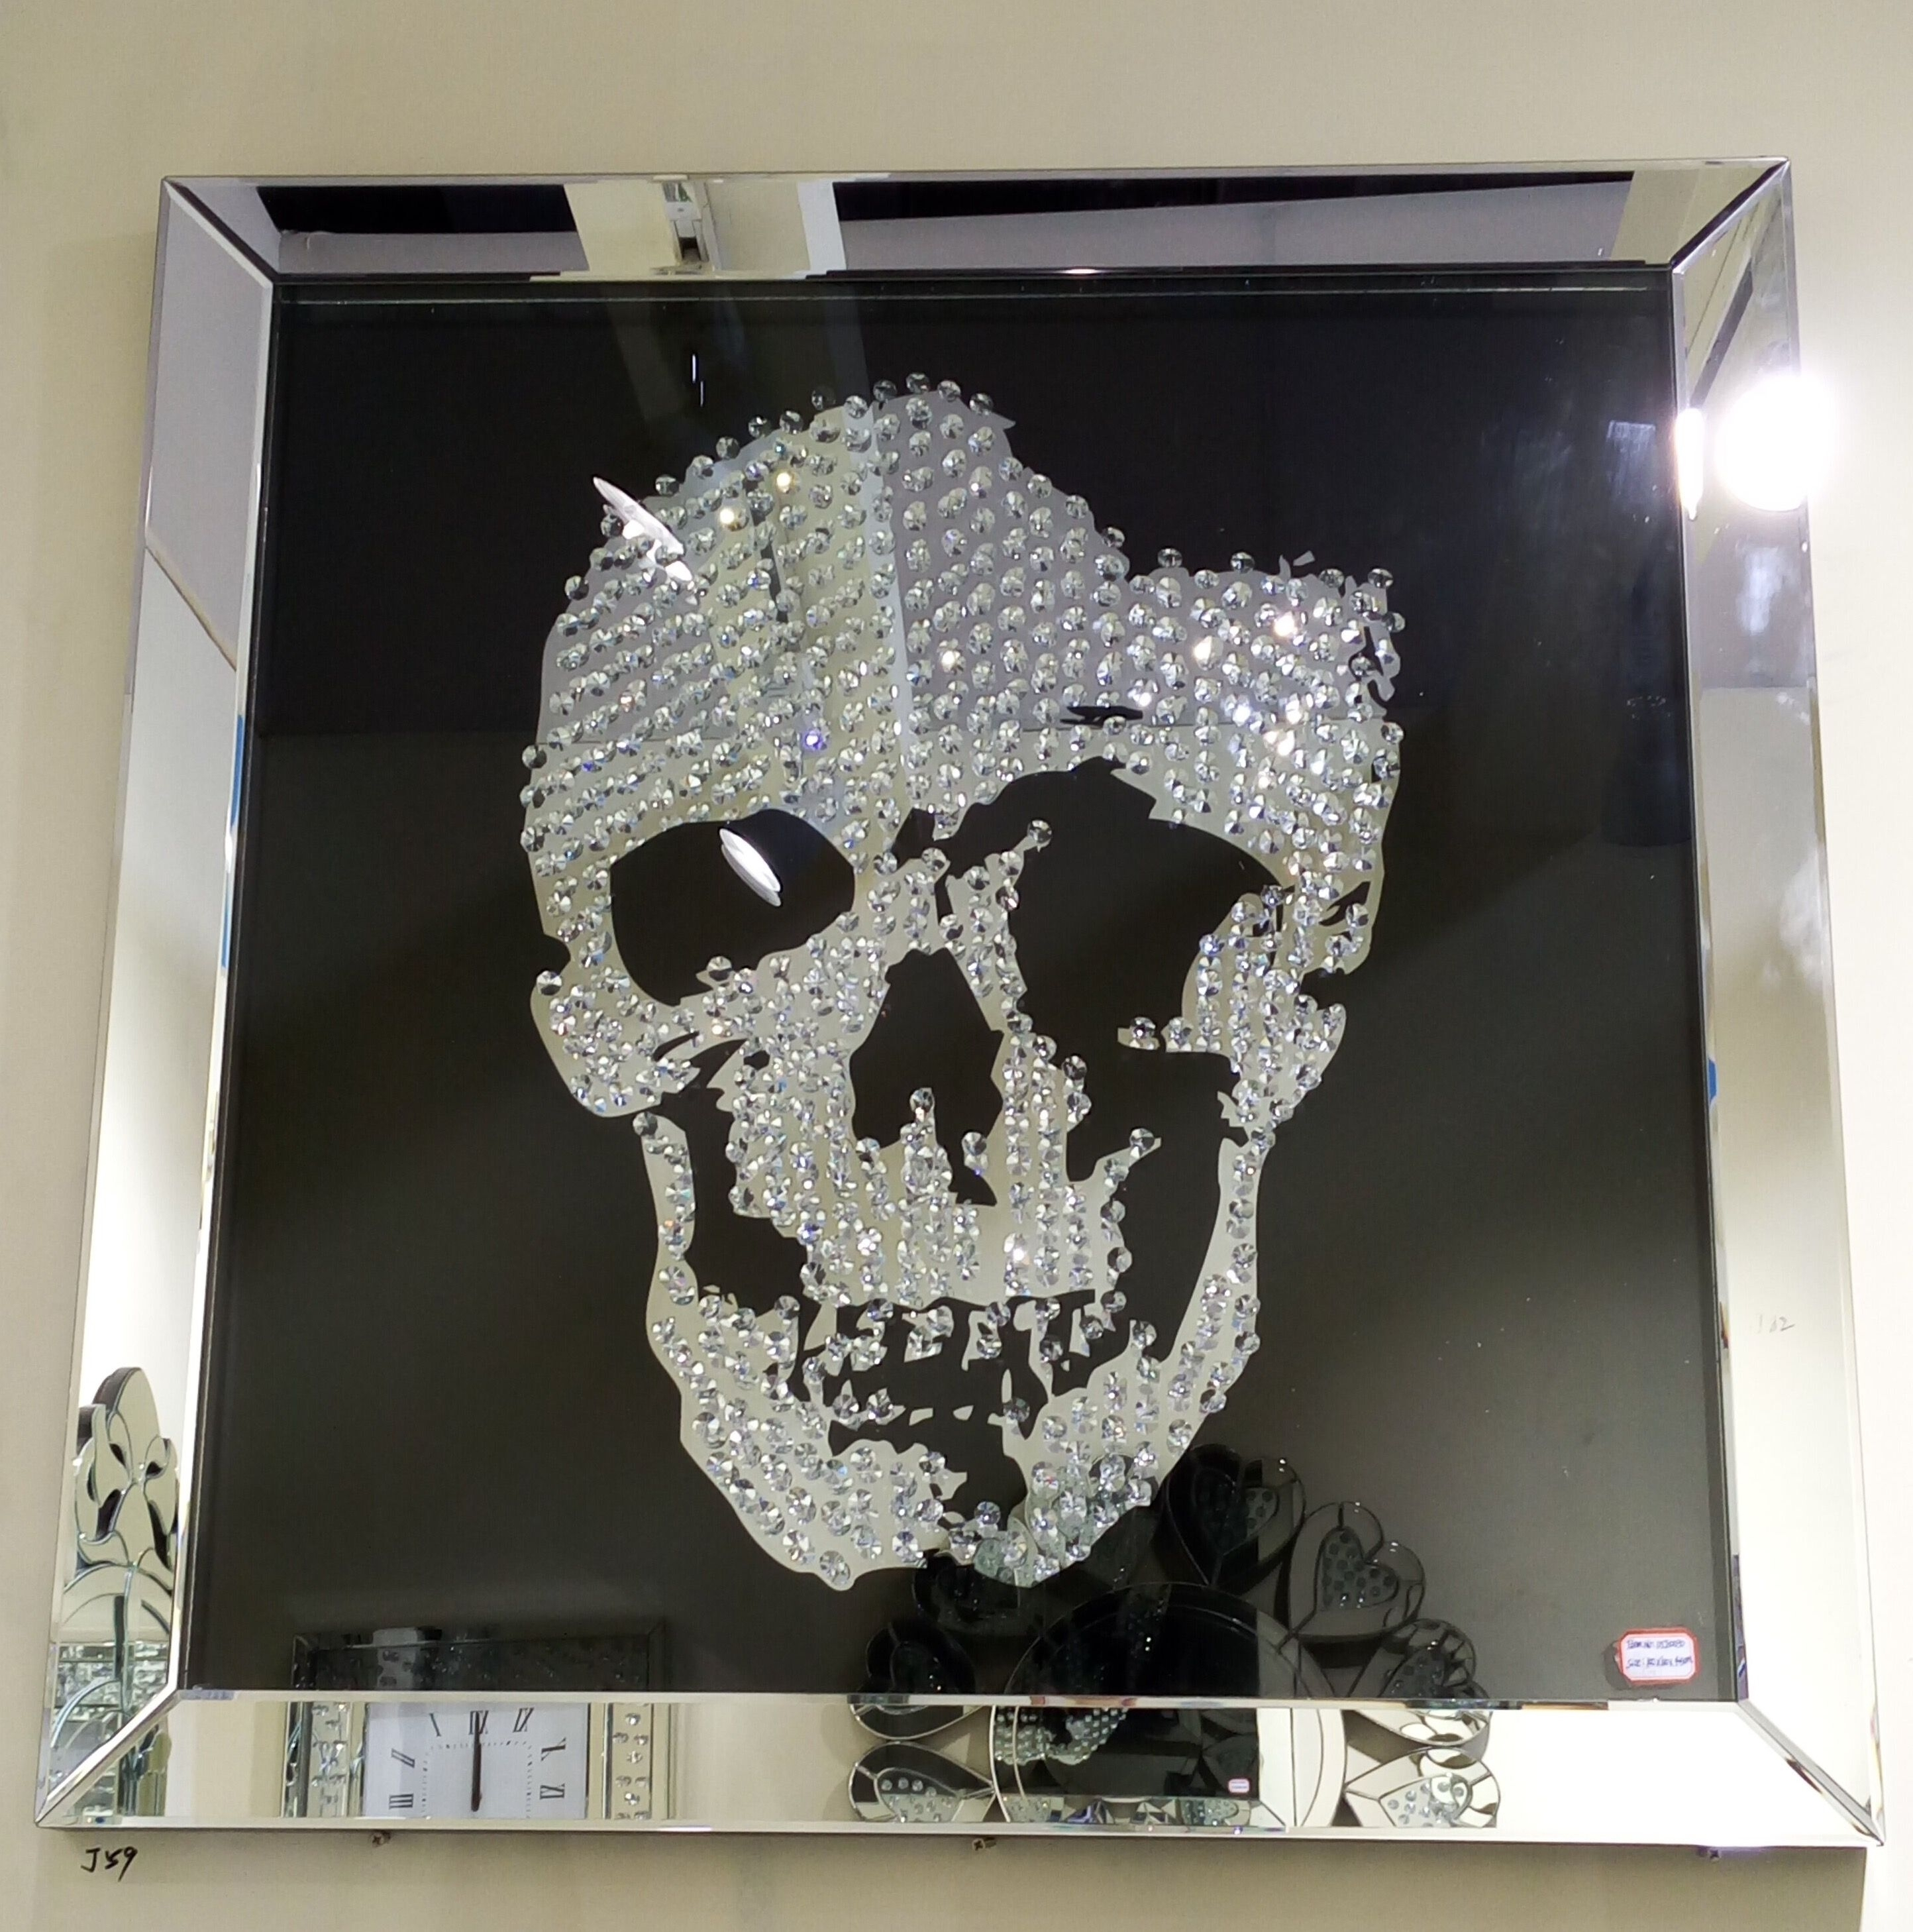 Swarovski Crystal Skull Wall Art With A Silver Mirrored Frame And with regard to Mirrored Wall Art (Image 15 of 20)